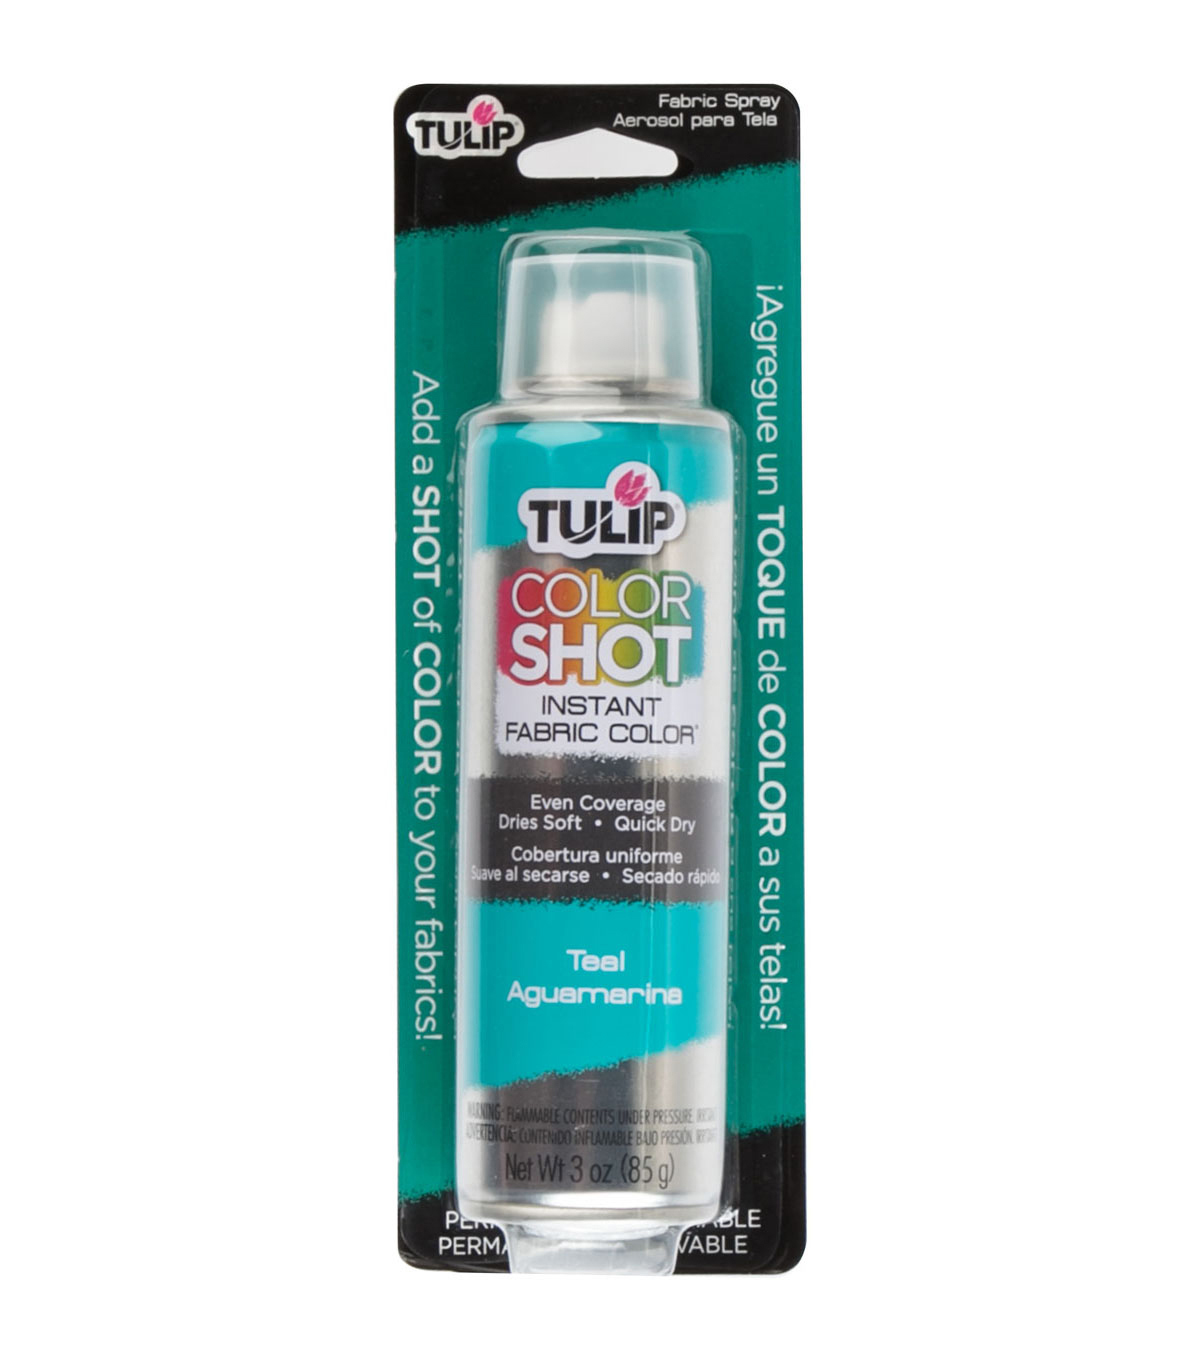 Tulip ColorShot Instant Fabric Color Spray 3oz, Teal